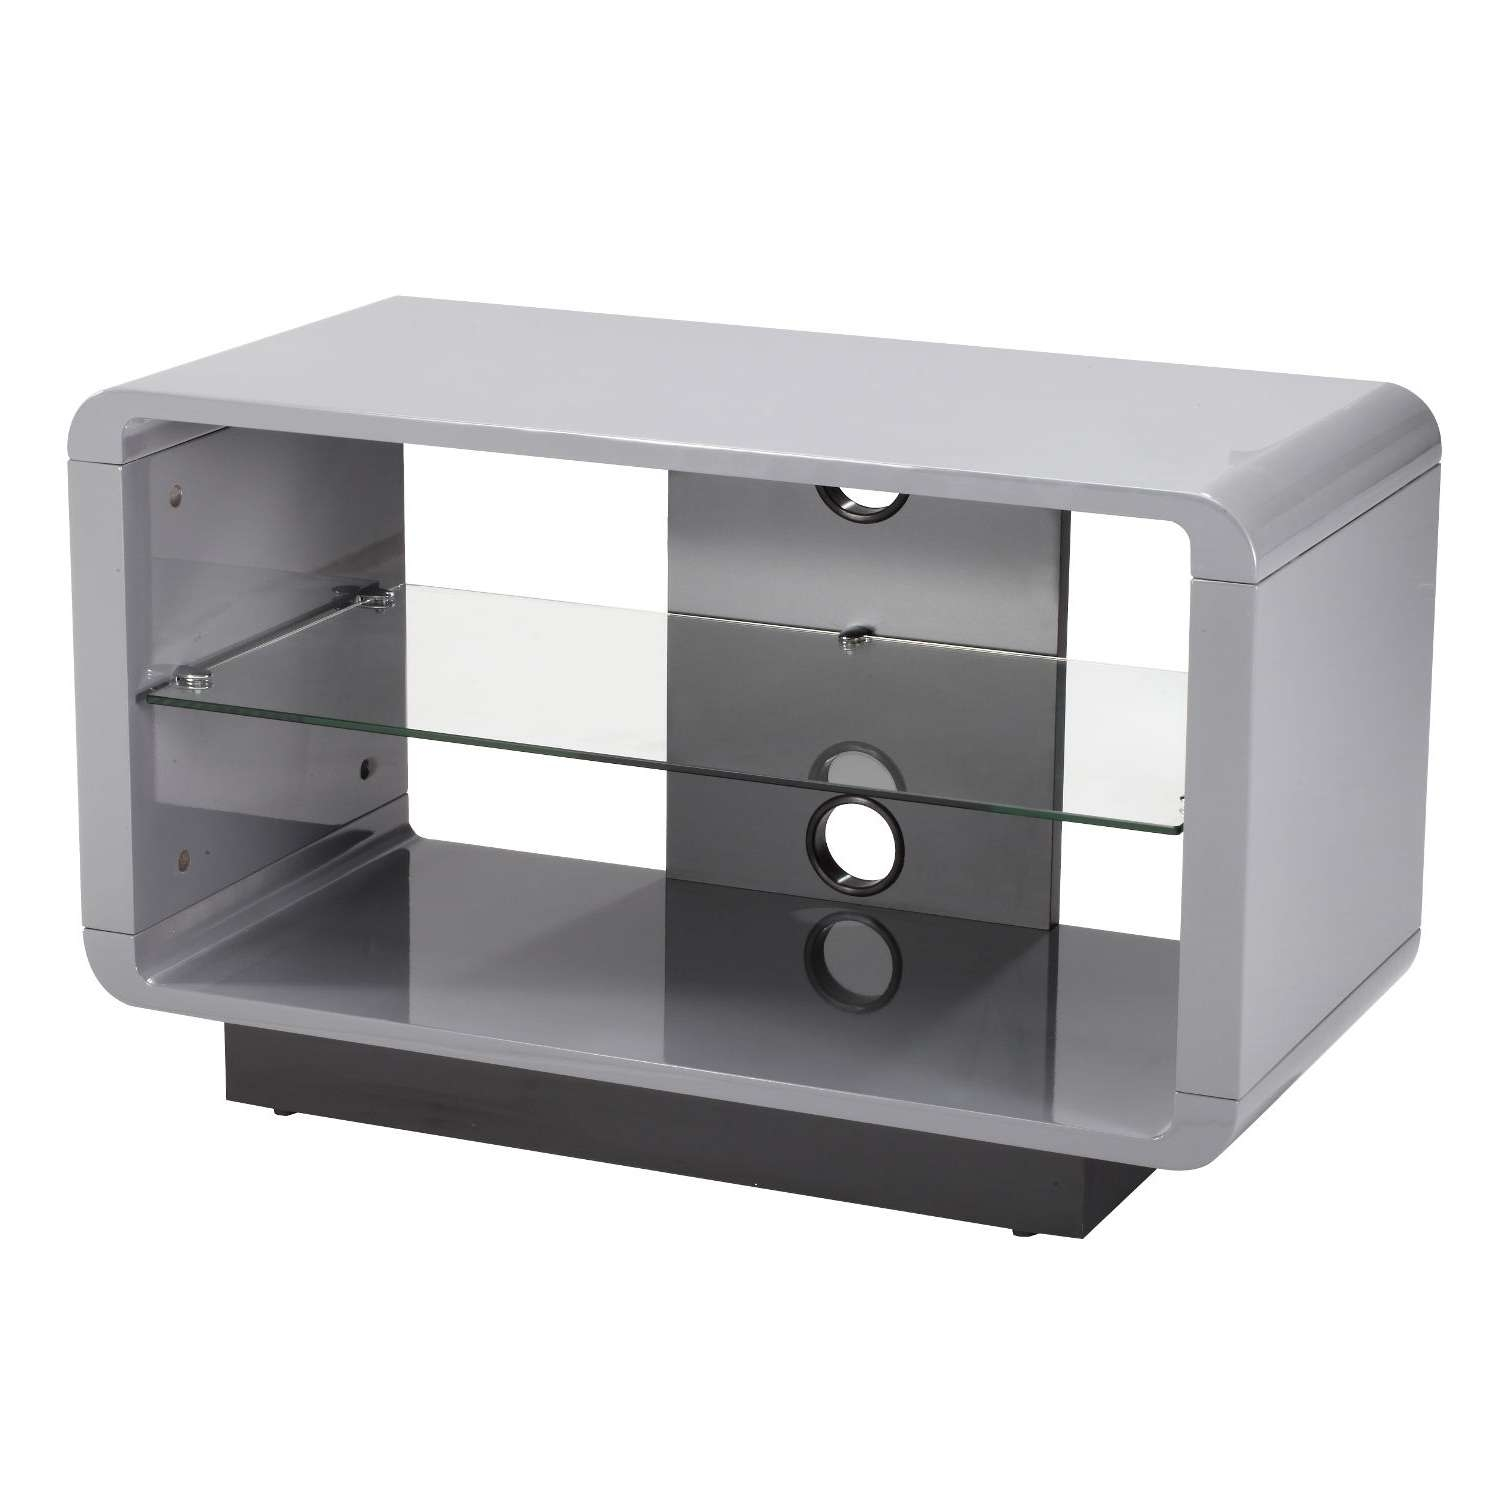 Tv : Beautiful White Gloss Oval Tv Stands Apartments Acceptable In White Gloss Oval Tv Stands (View 9 of 20)